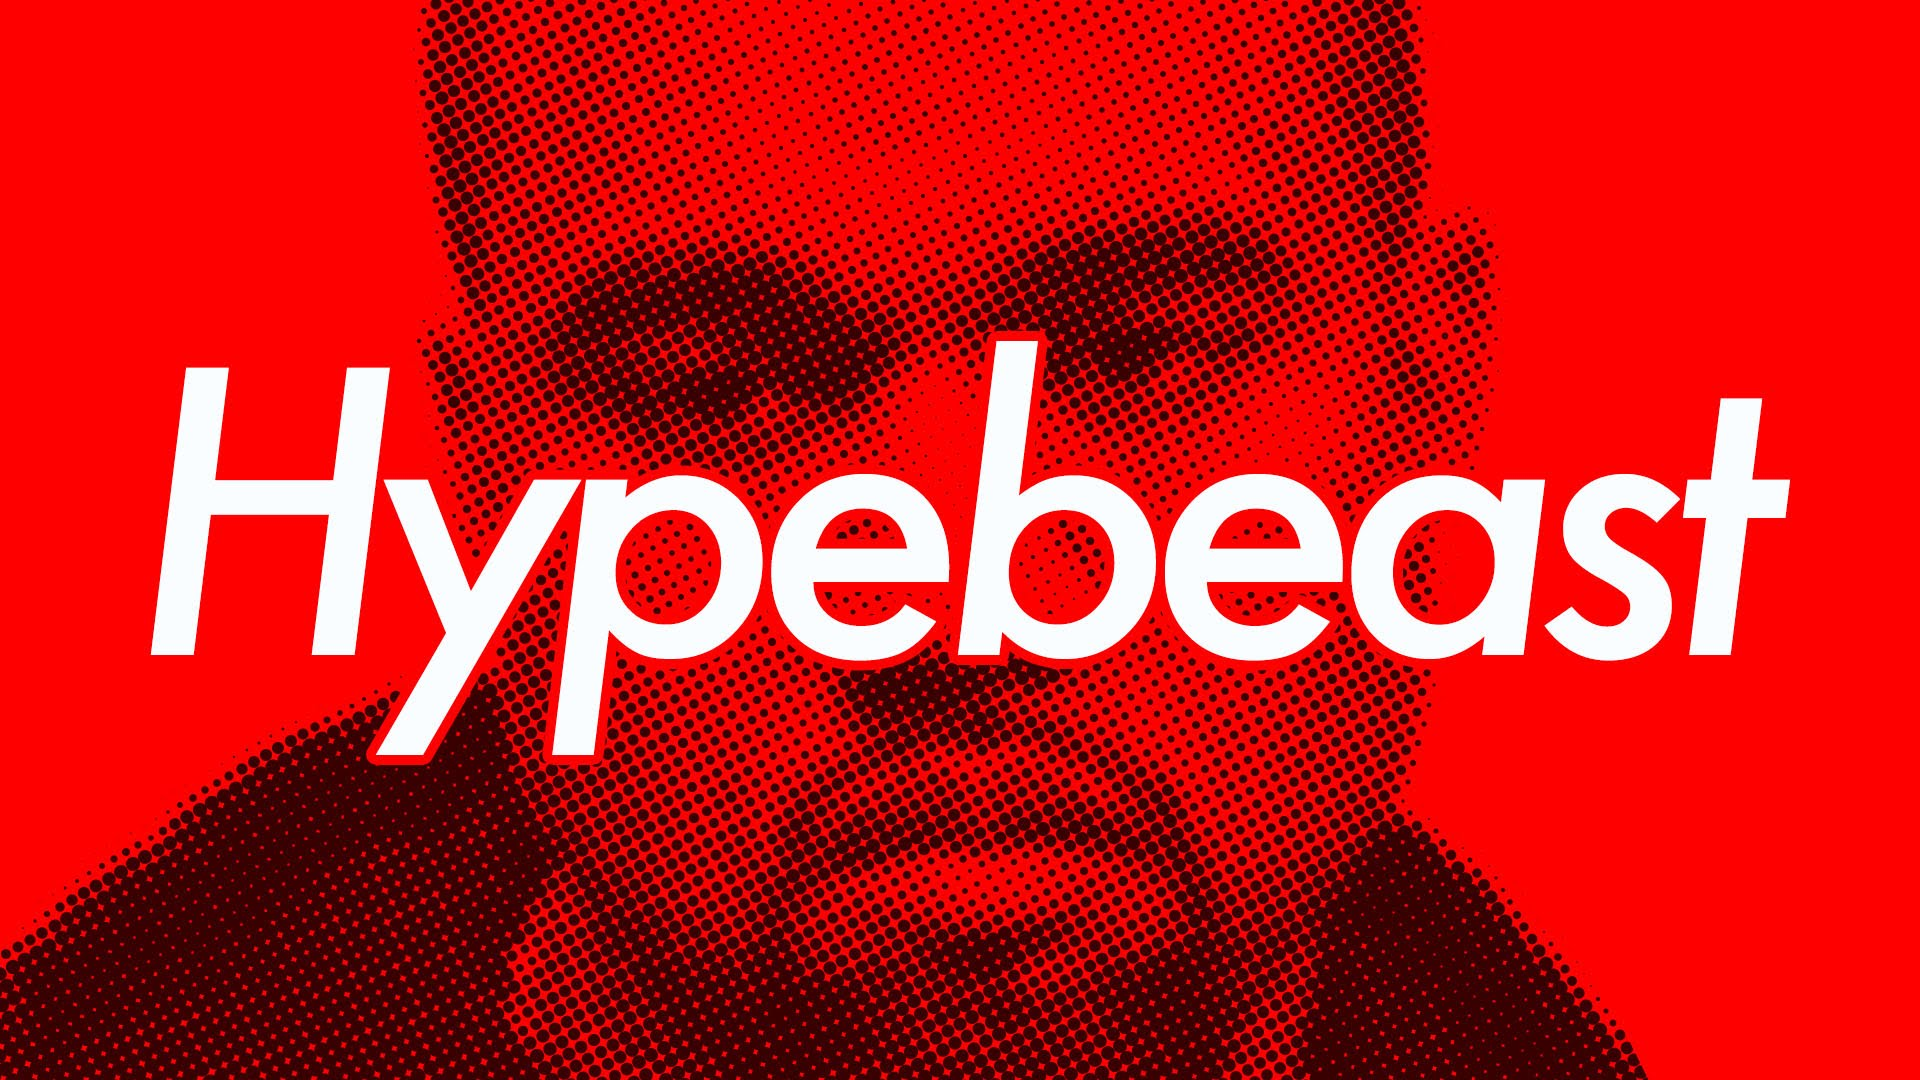 Hypebeast wallpaper download 1920x1080